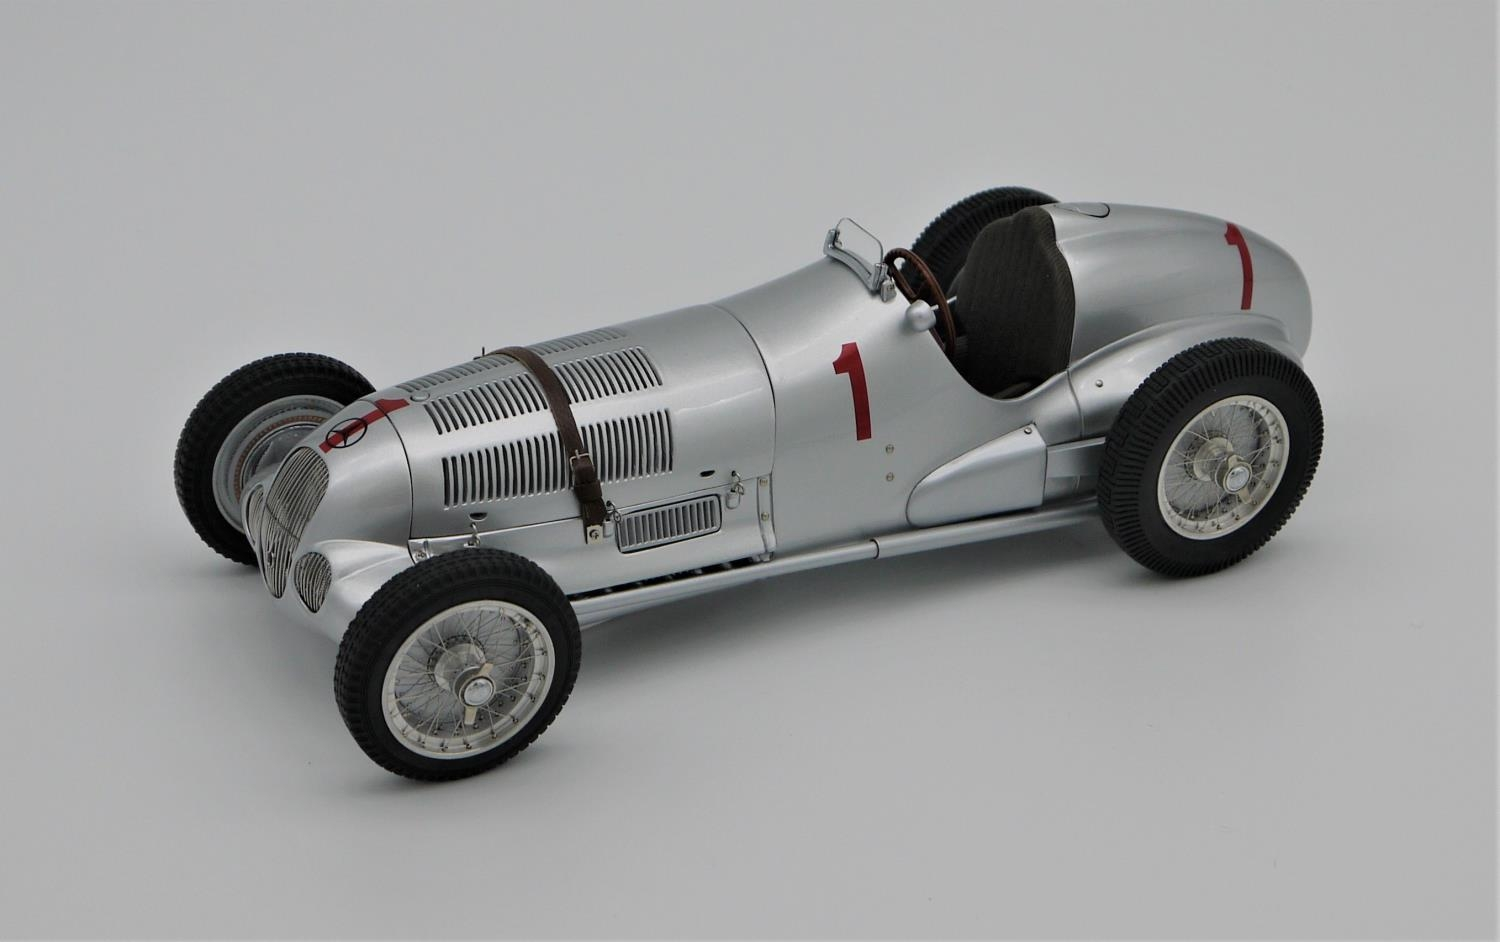 CMC MODELS 1:18 SCALE MODEL OF THE 1937 MERCEDES BENZ W125 NUMBER 1 GP DONINGTON ENTRANT (